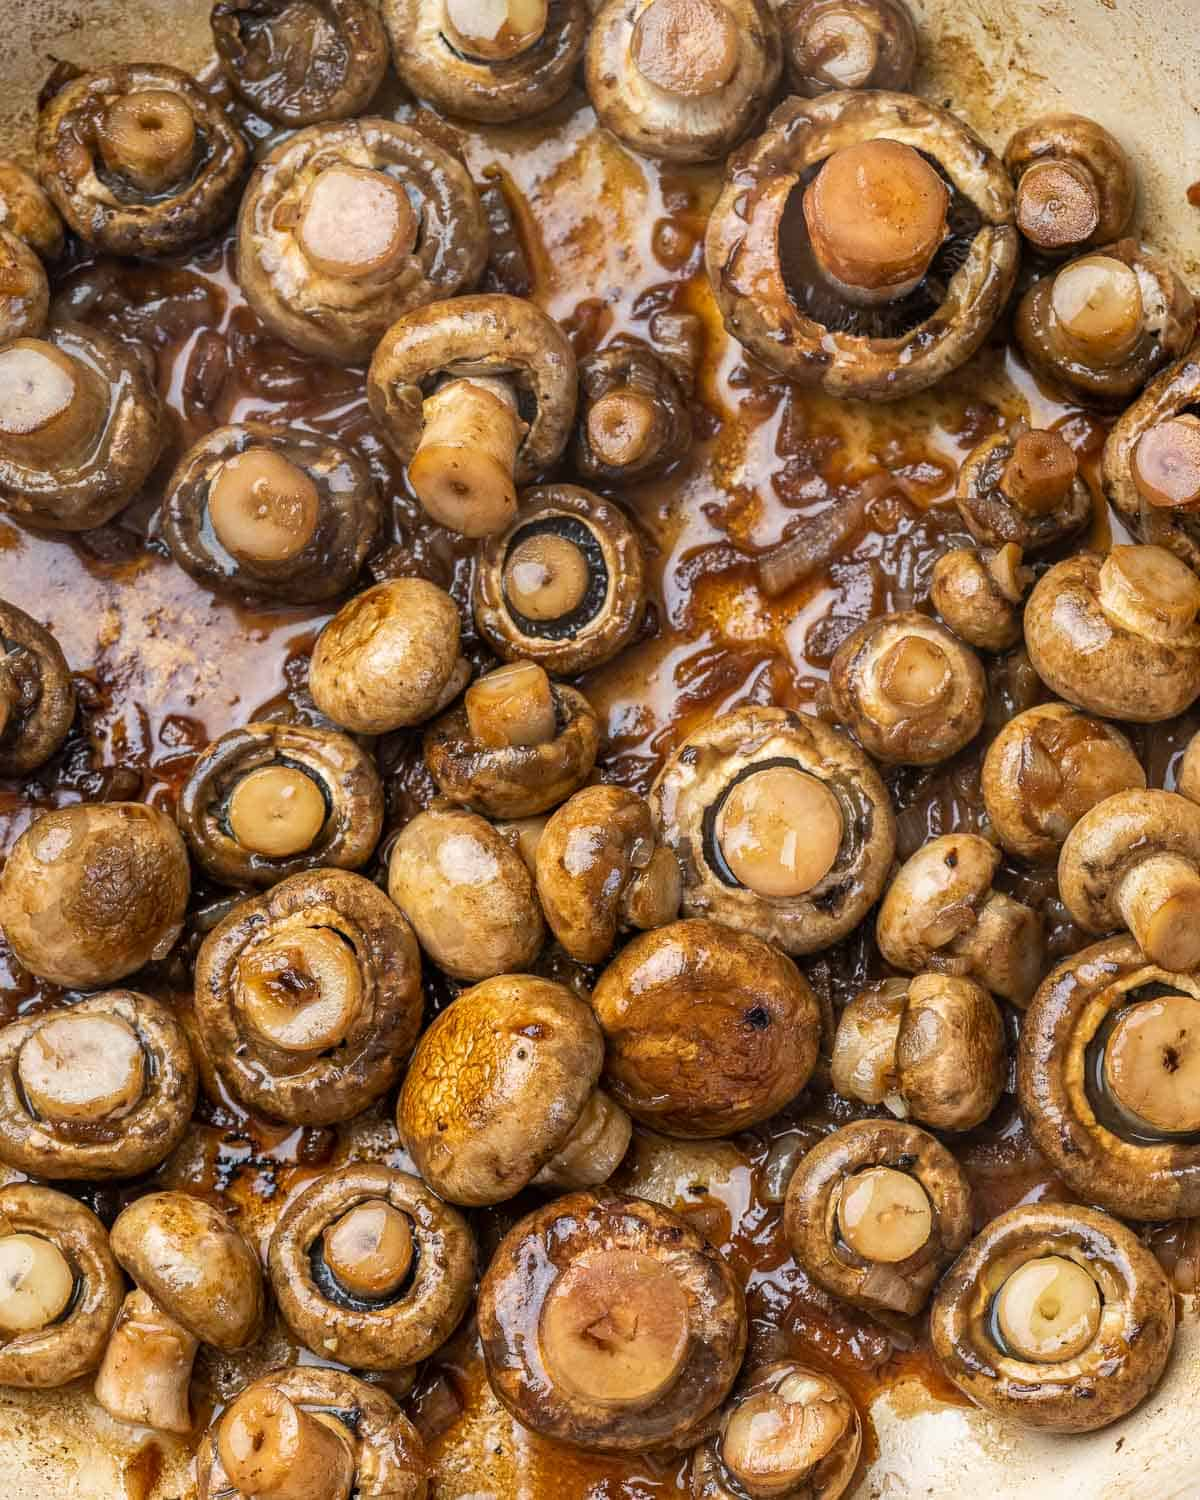 Mushrooms cooking in skillet with beef broth.